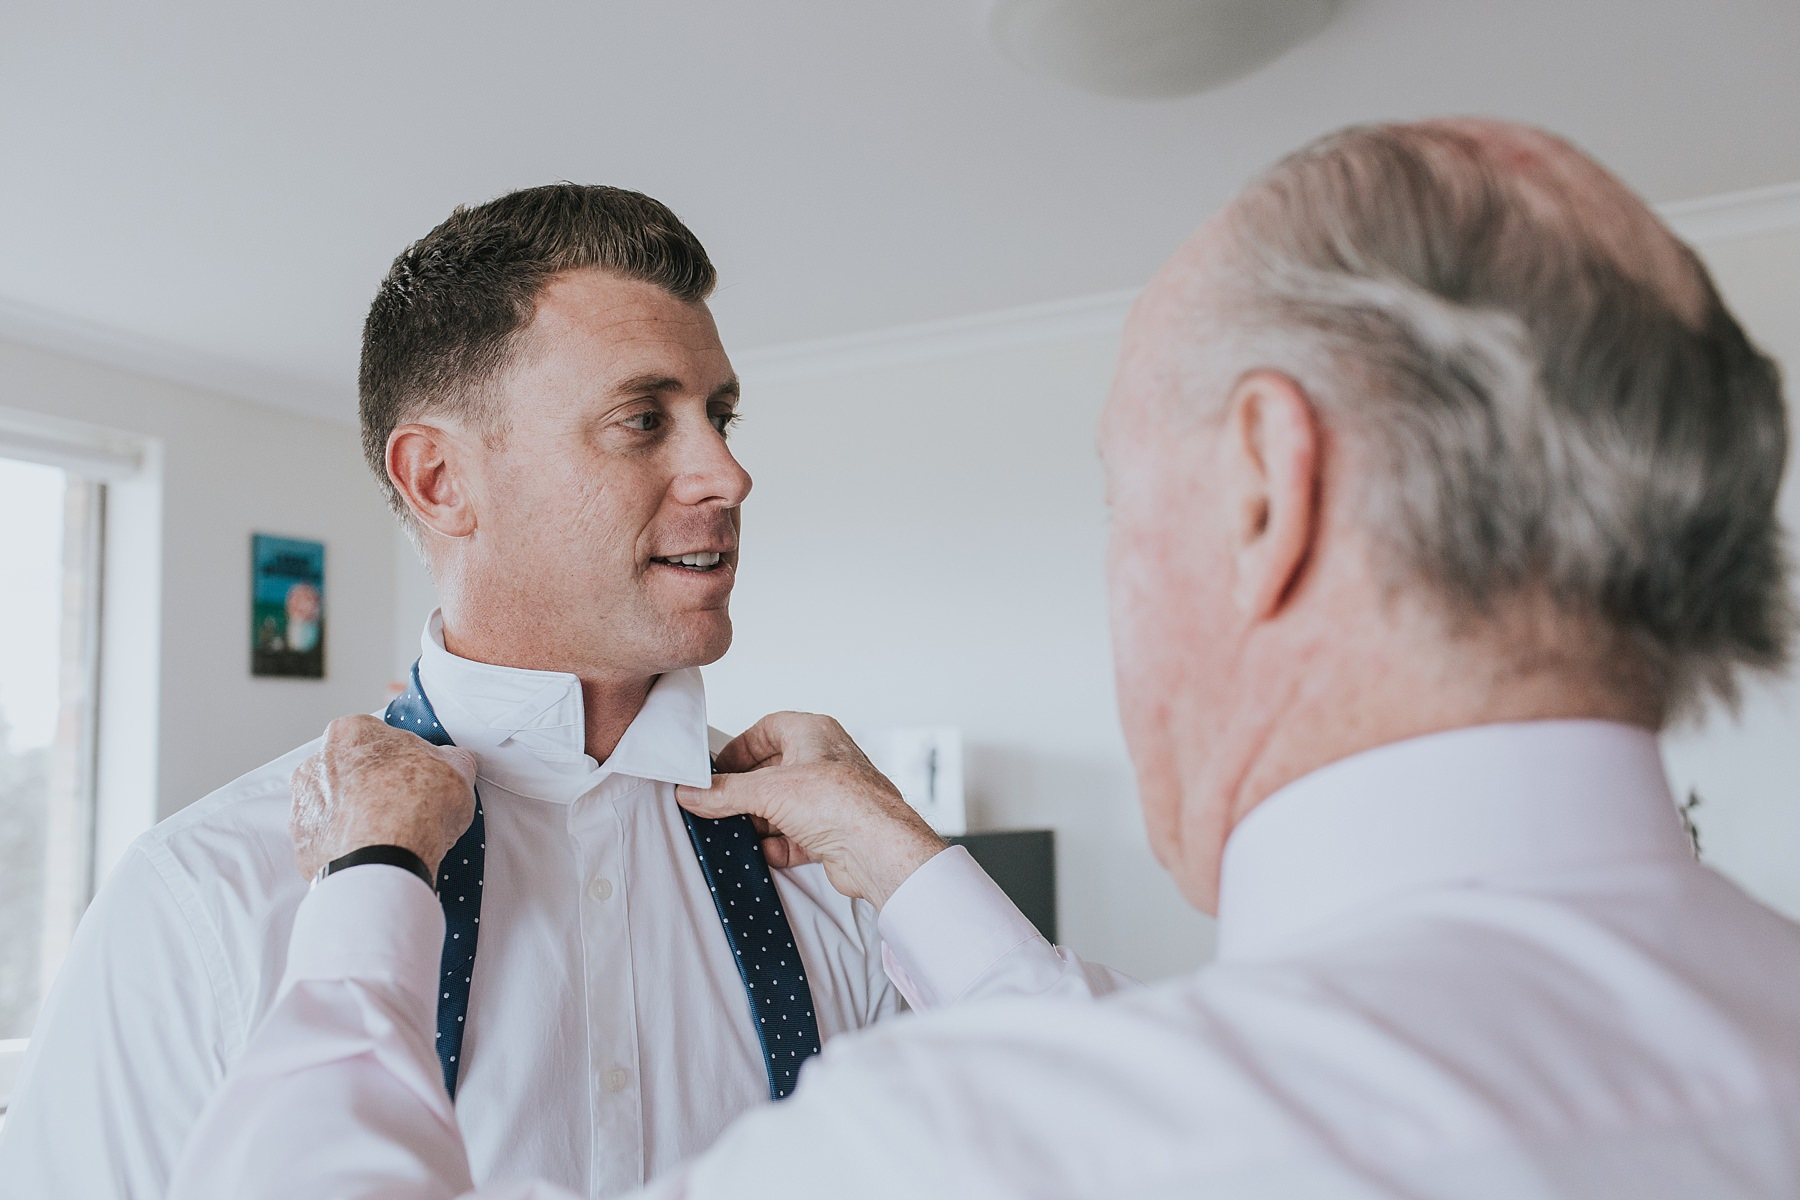 groomsmen getting ready before wedding ceremony